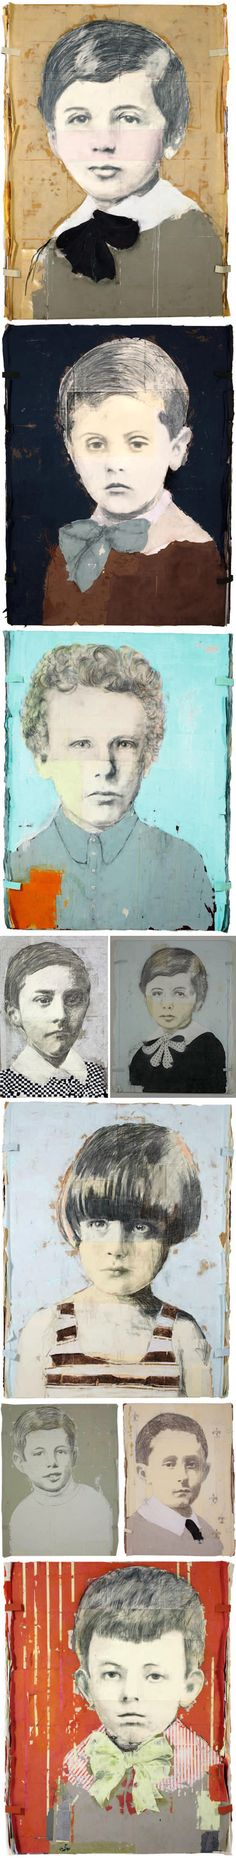 louis boudreault's childhood portraits of Warhol Picasso VanGogh. large scale & lovely color